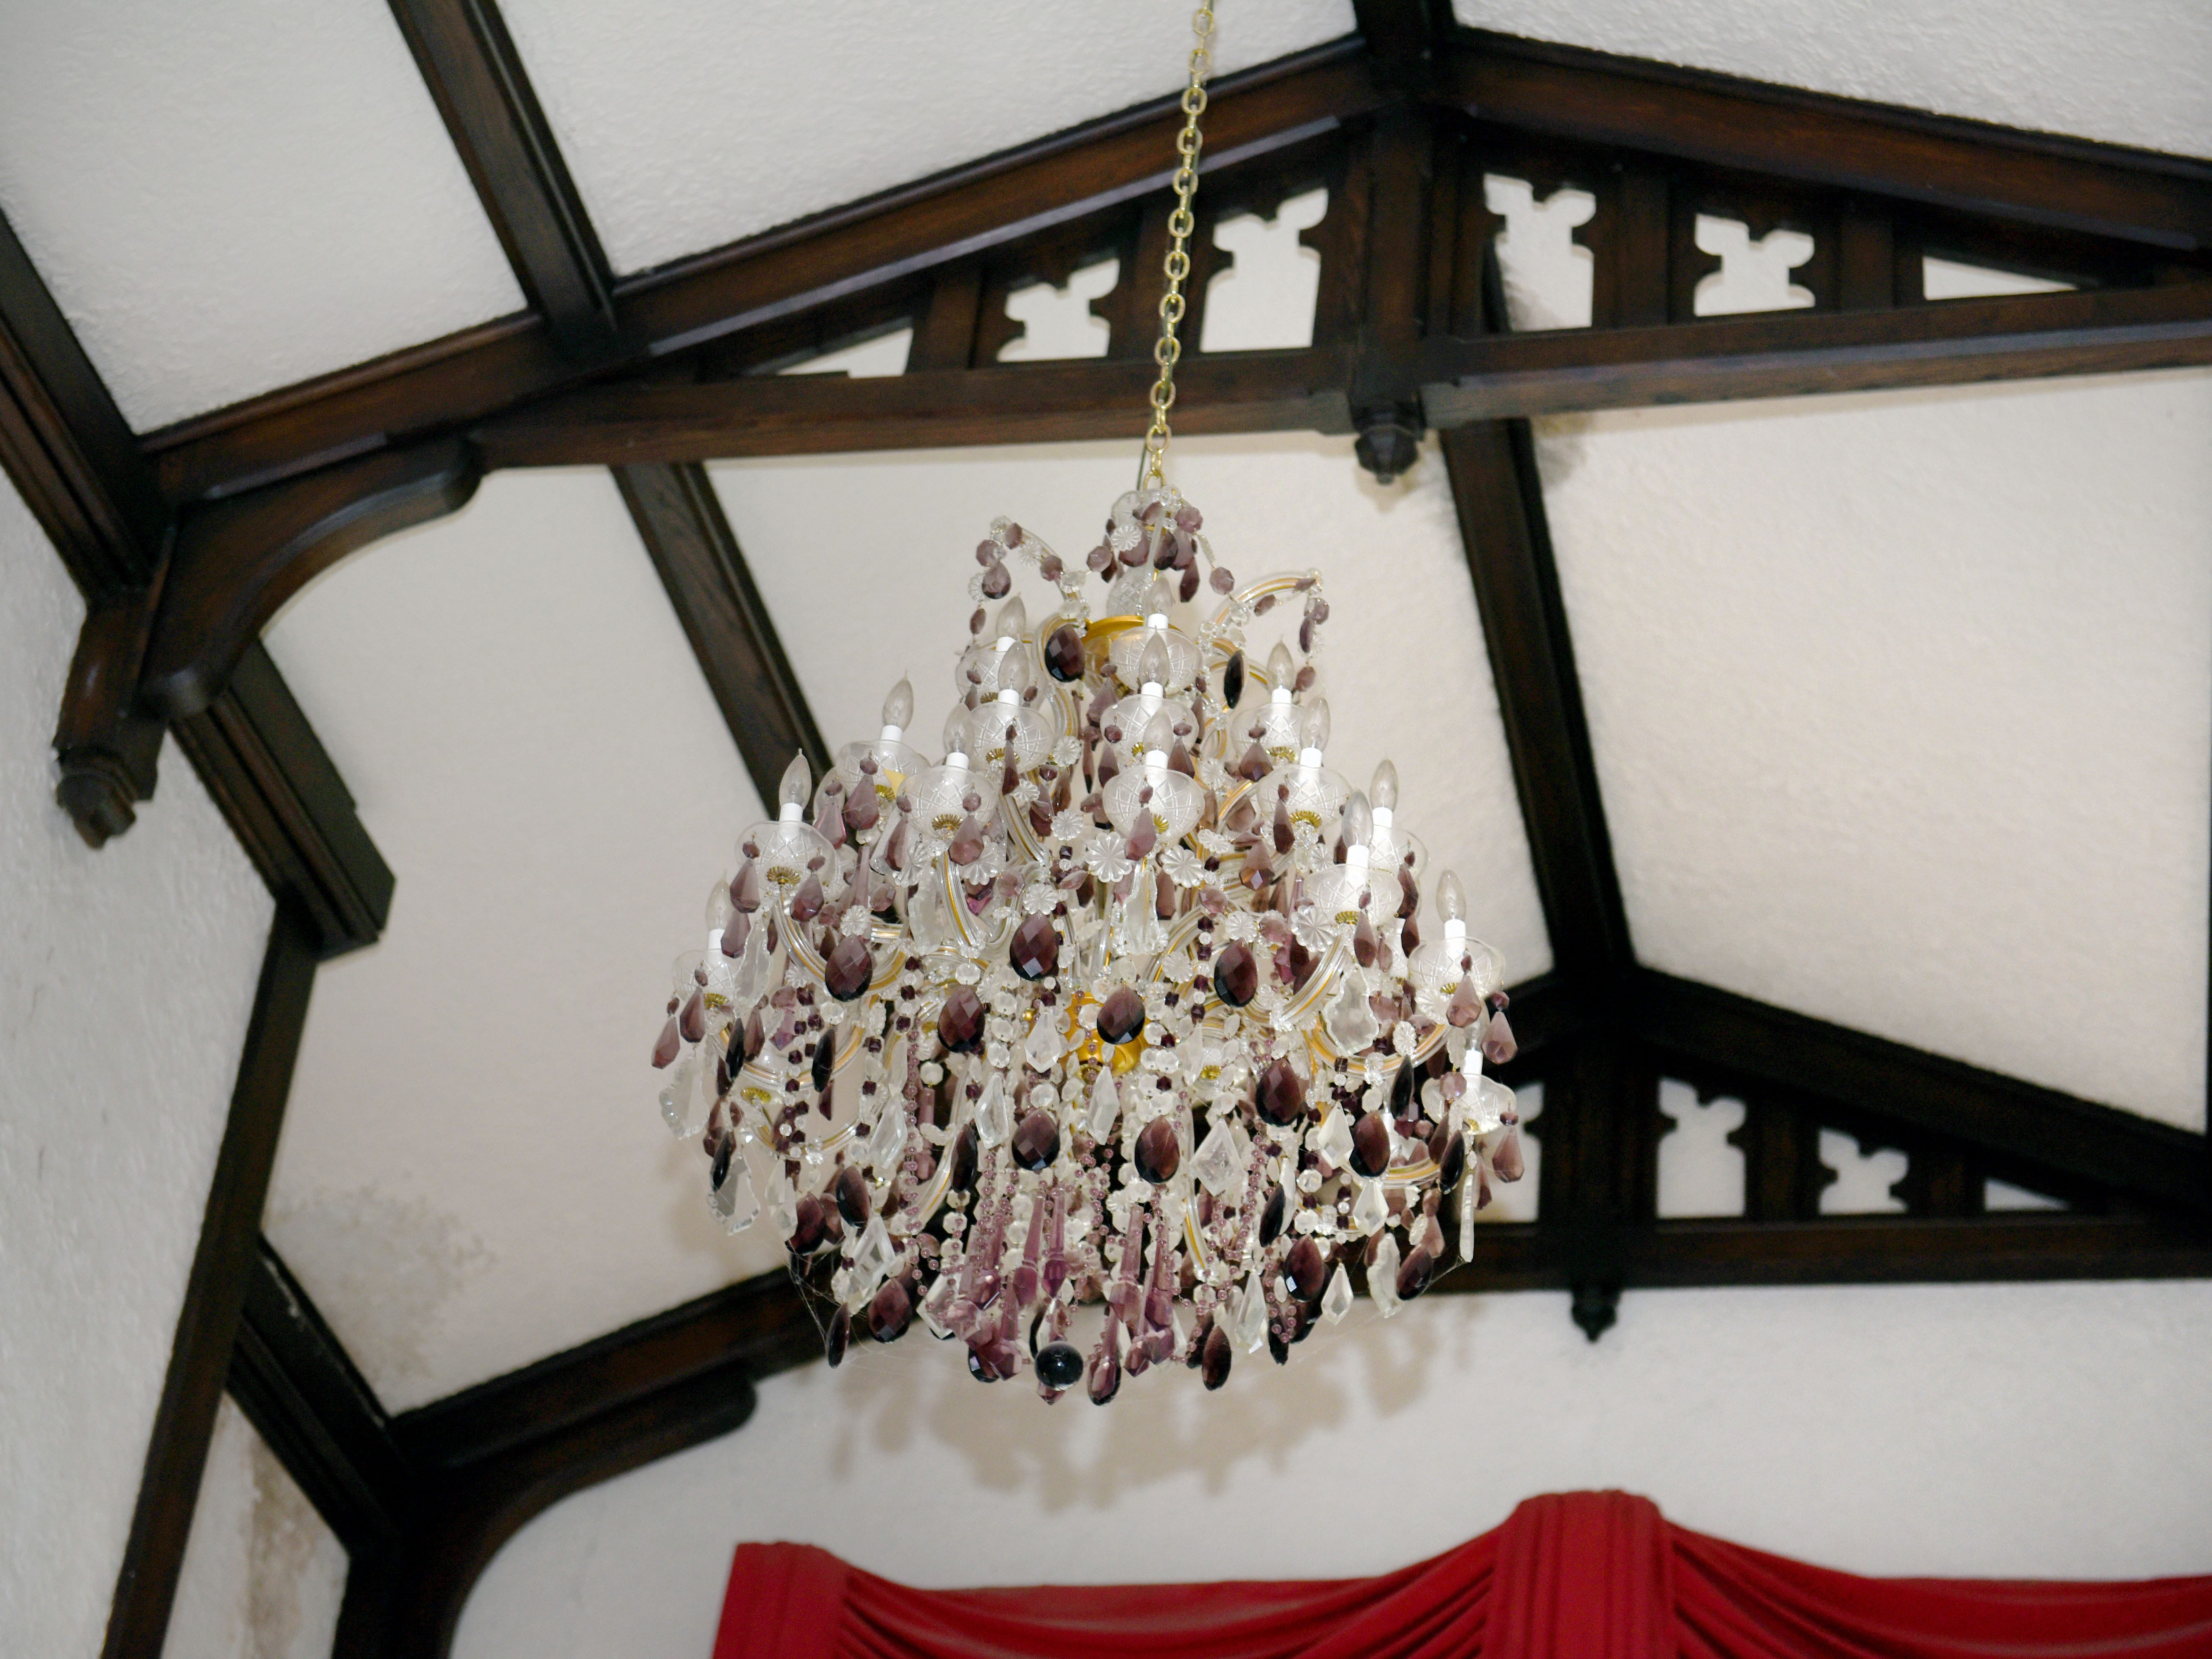 A chandelier dripping with crystals hangs from the ceiling in the main living space.